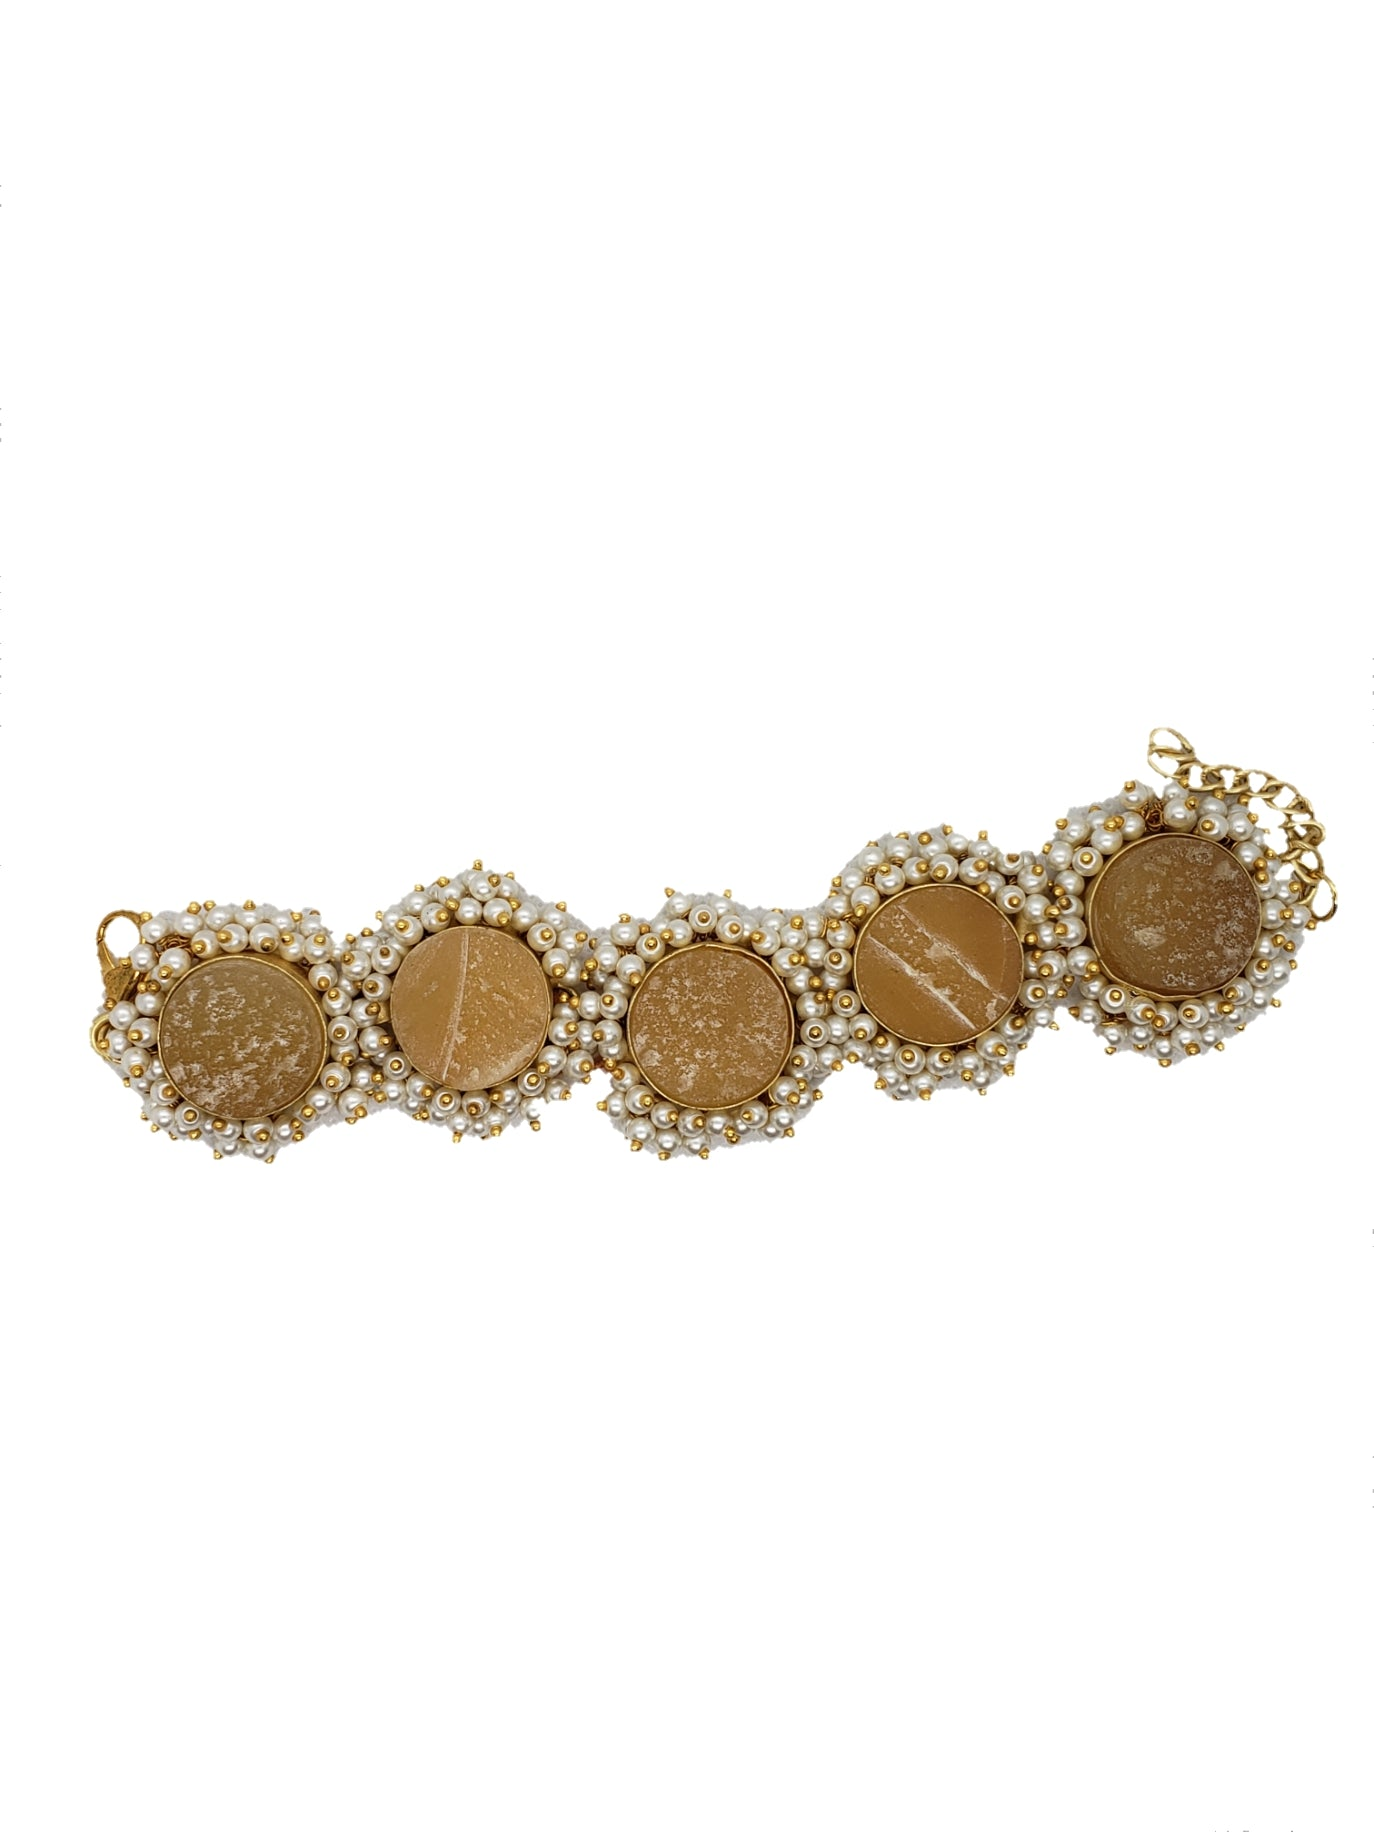 Citrine Stone Bracelet - The Bauble Shop